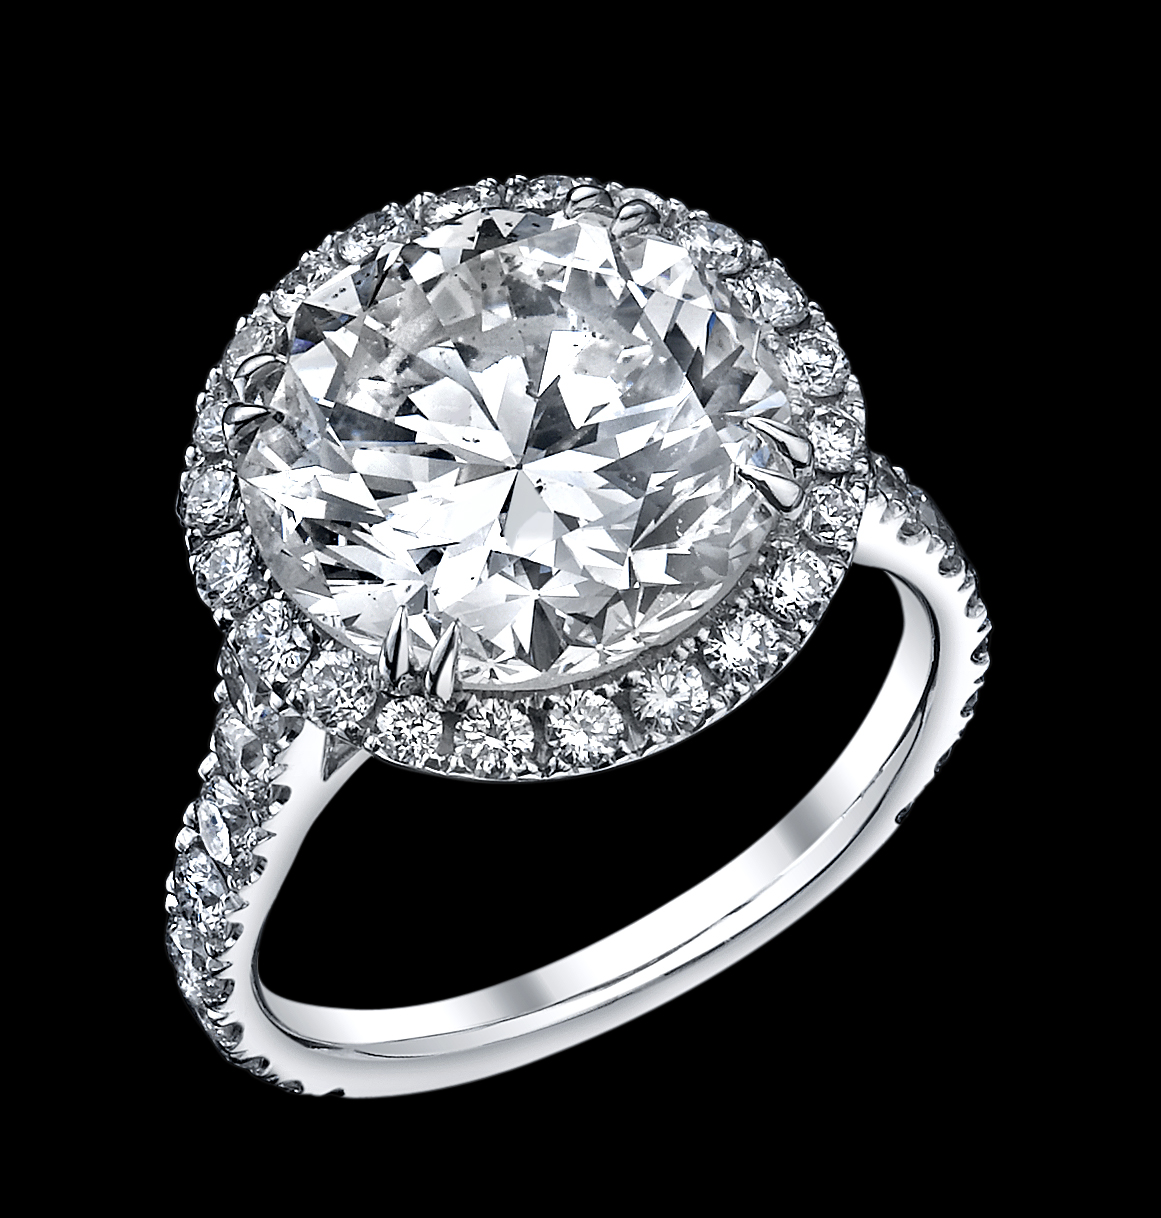 30 Beautiful Diamond Jewelry - Hottest Pictures & Wallpapers